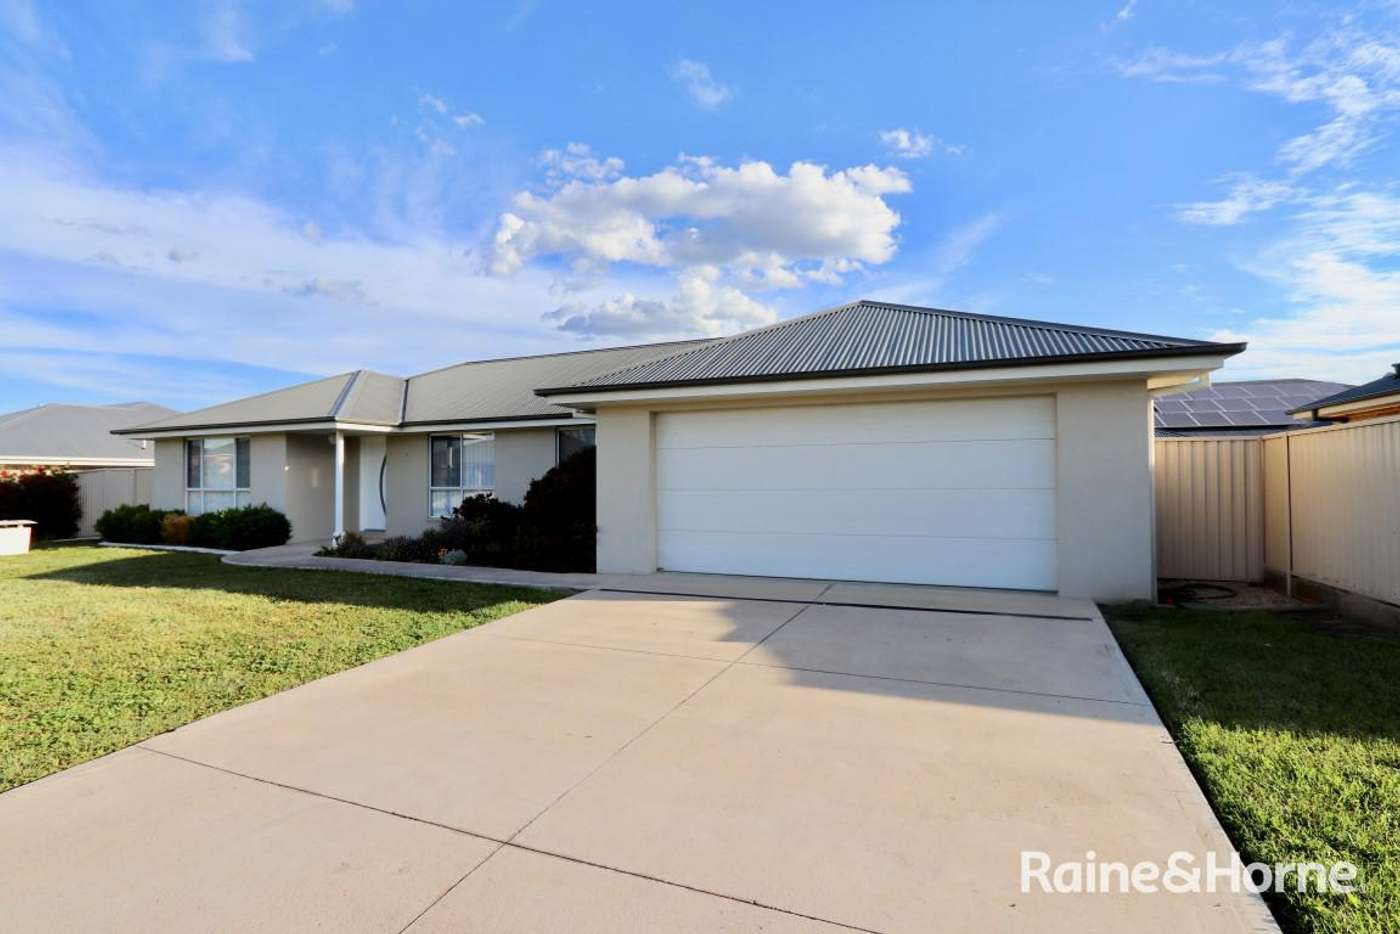 Main view of Homely house listing, 4 Icely St, Bathurst NSW 2795